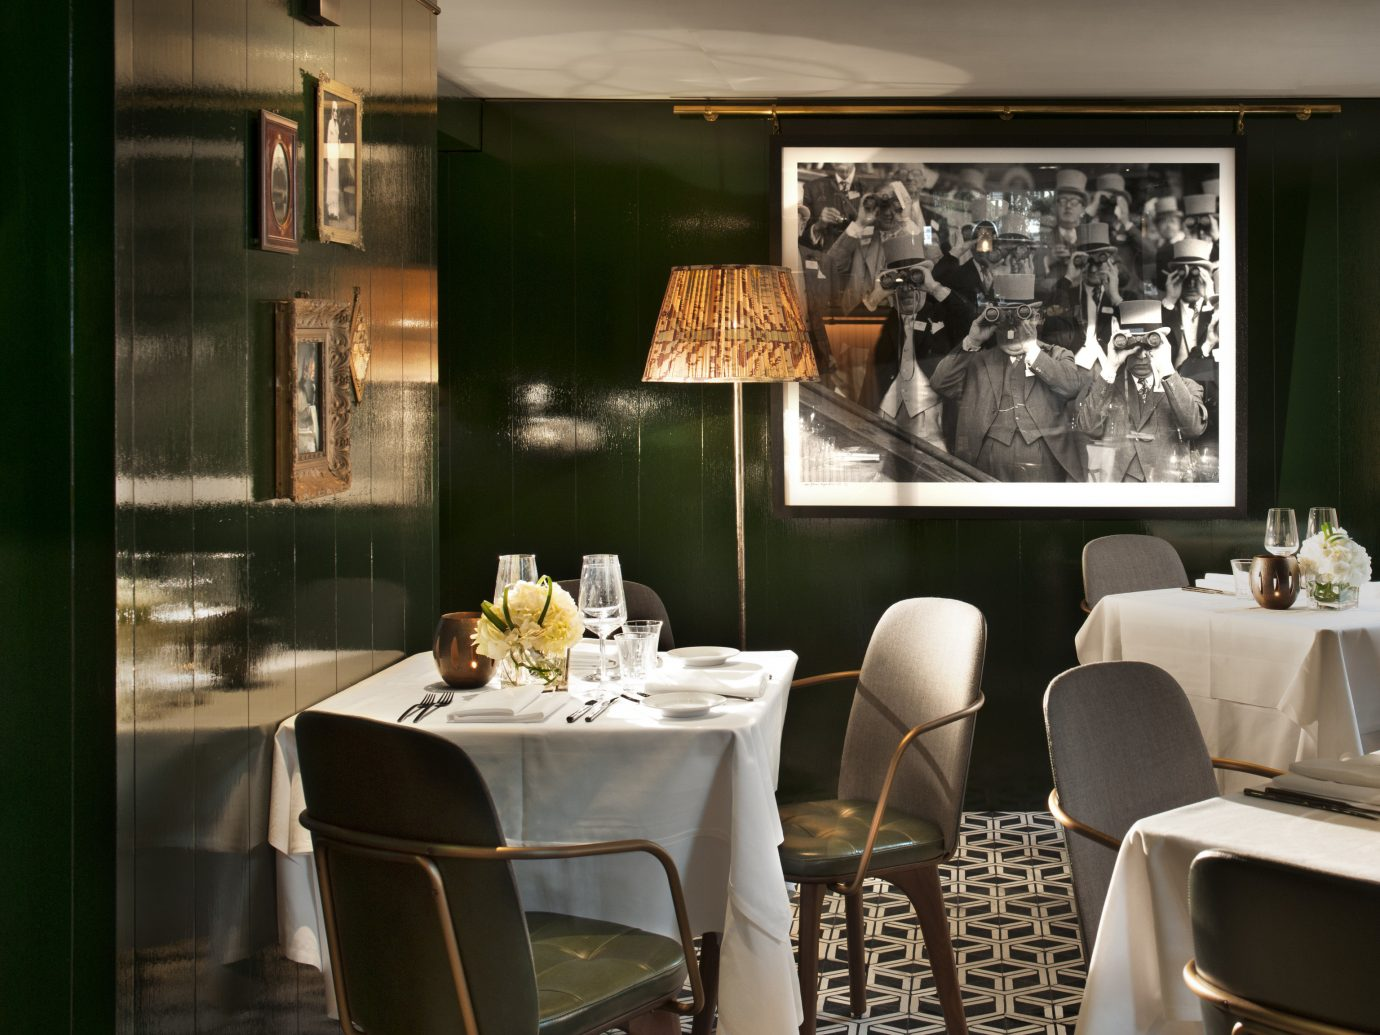 Dining room at il Pampero in Belgravia, London